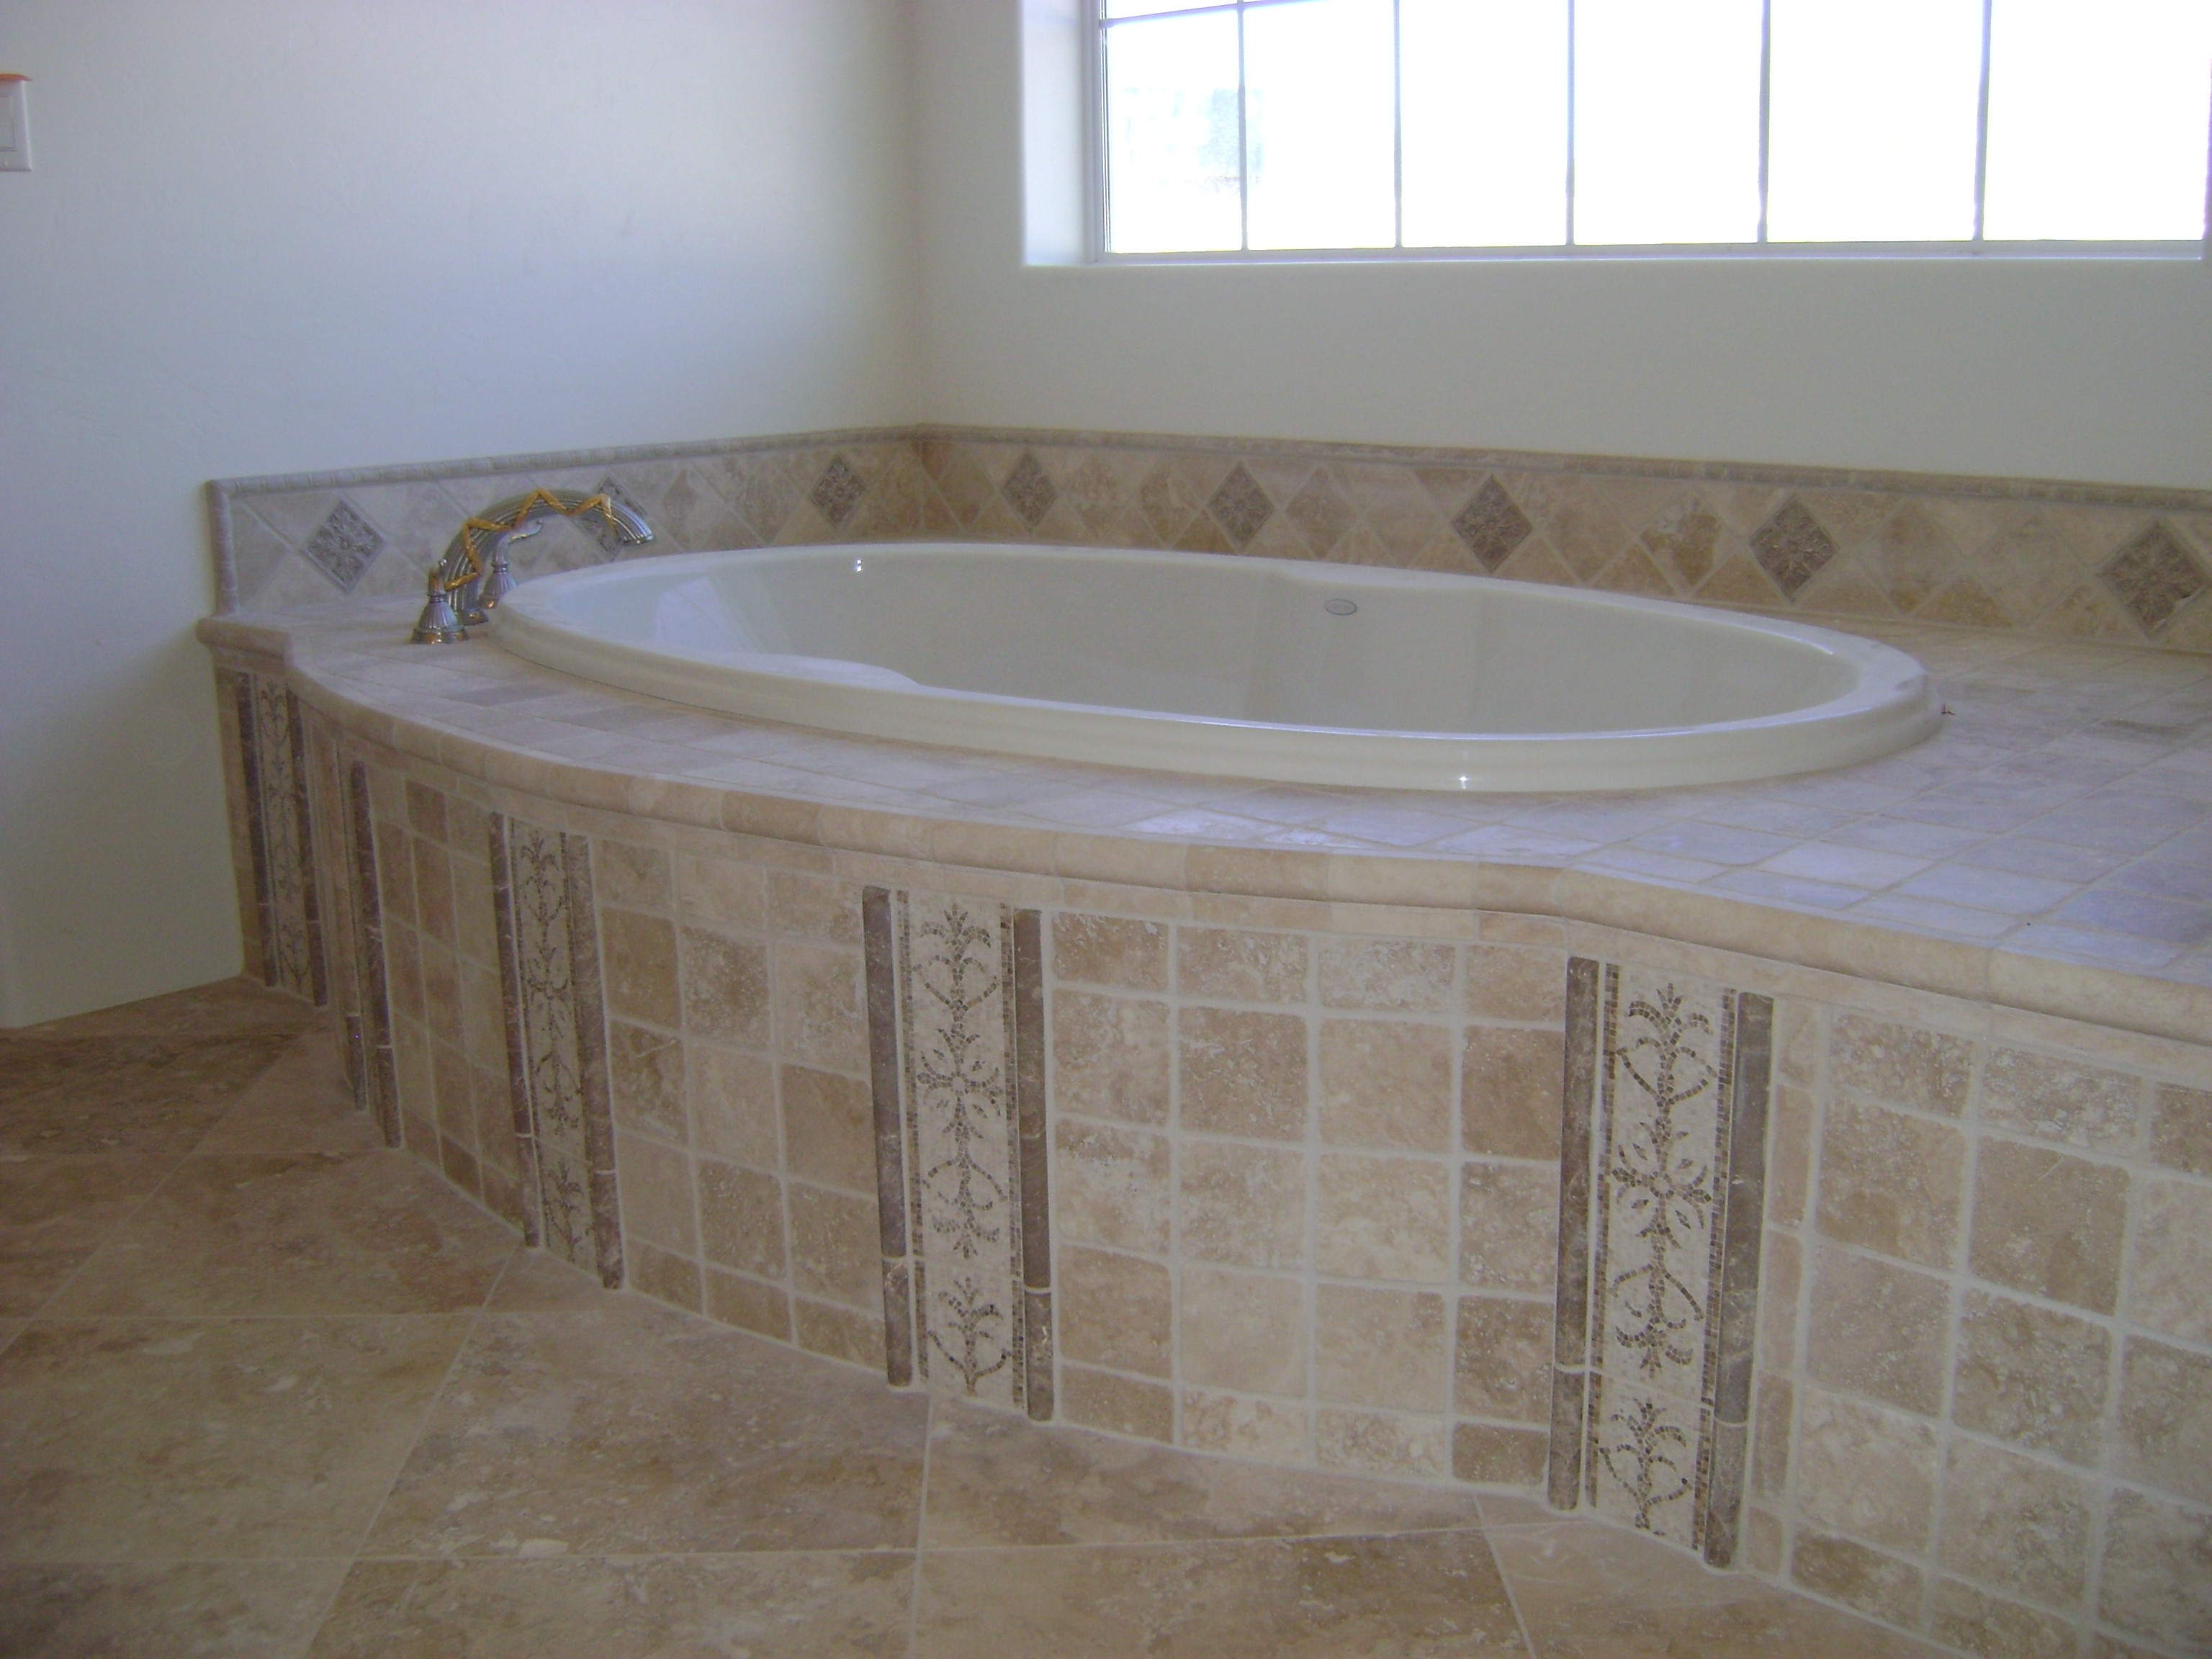 Bathtub surround tile design bathtub surround - Installing tile around bathtub ...